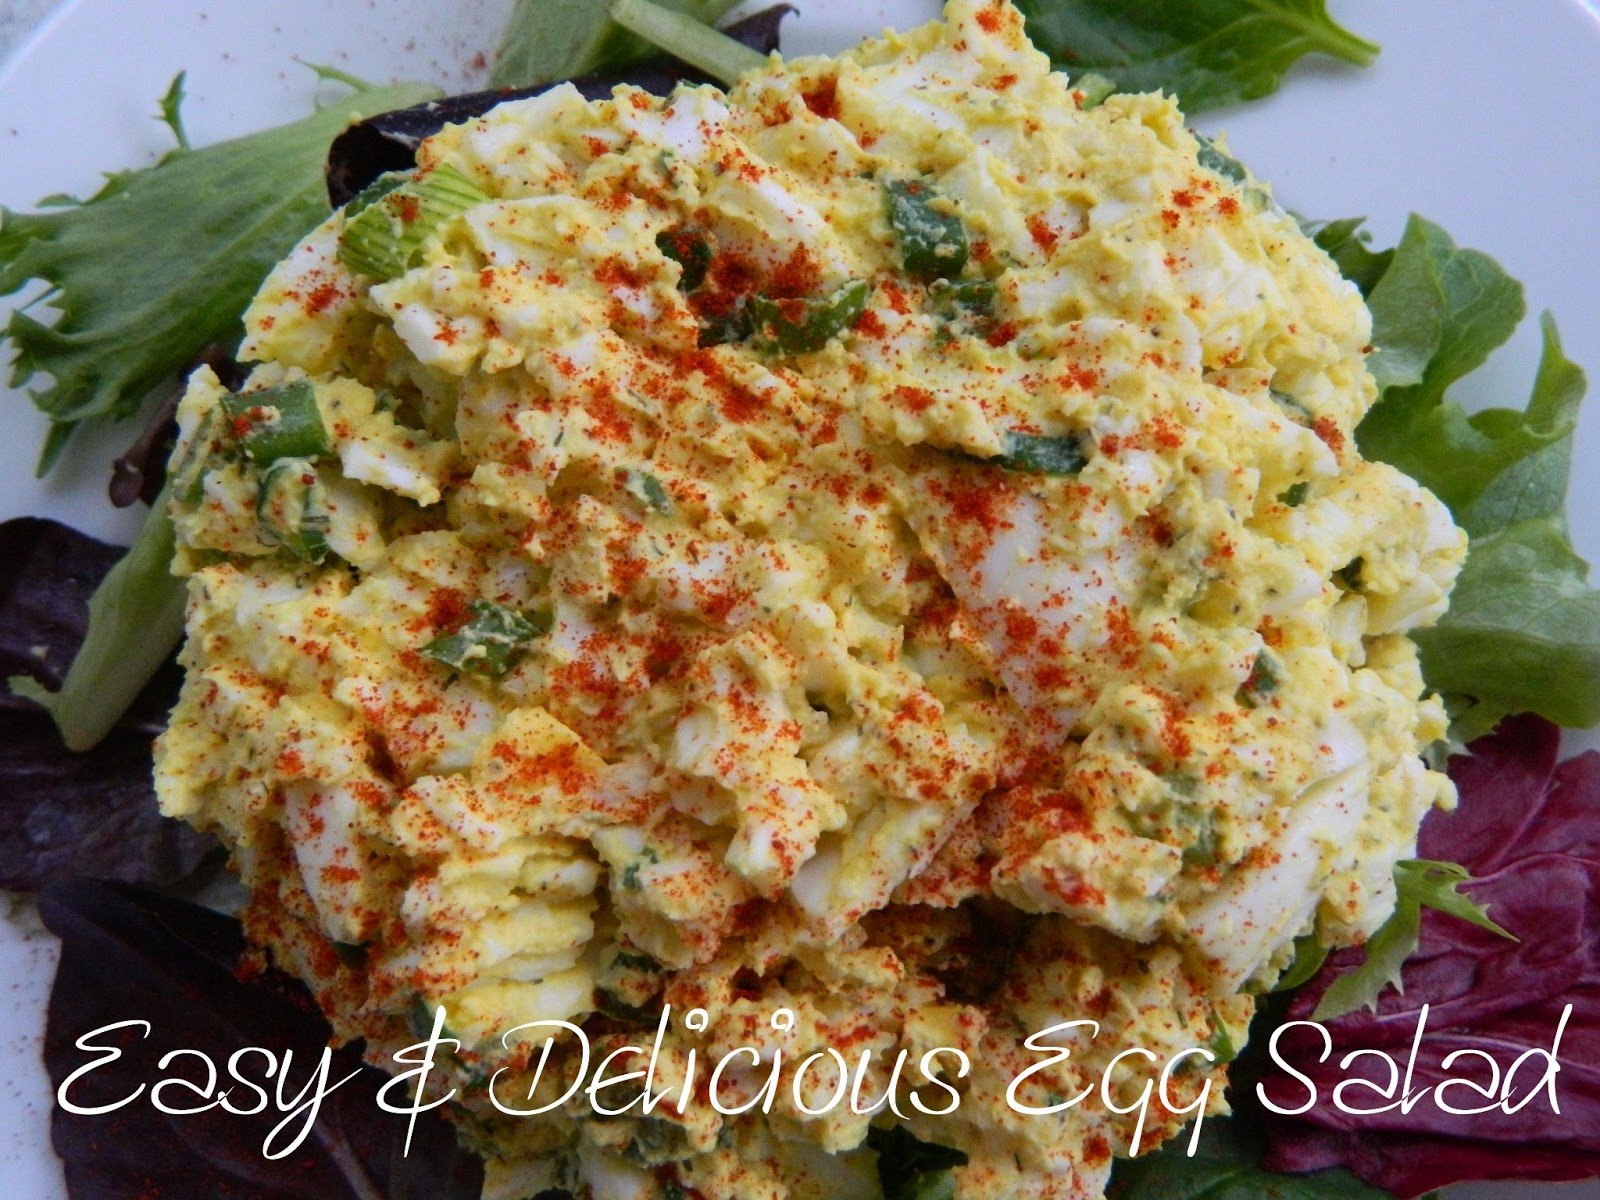 Leftover Easter Eggs? Make Easy & Delicious Egg Salad